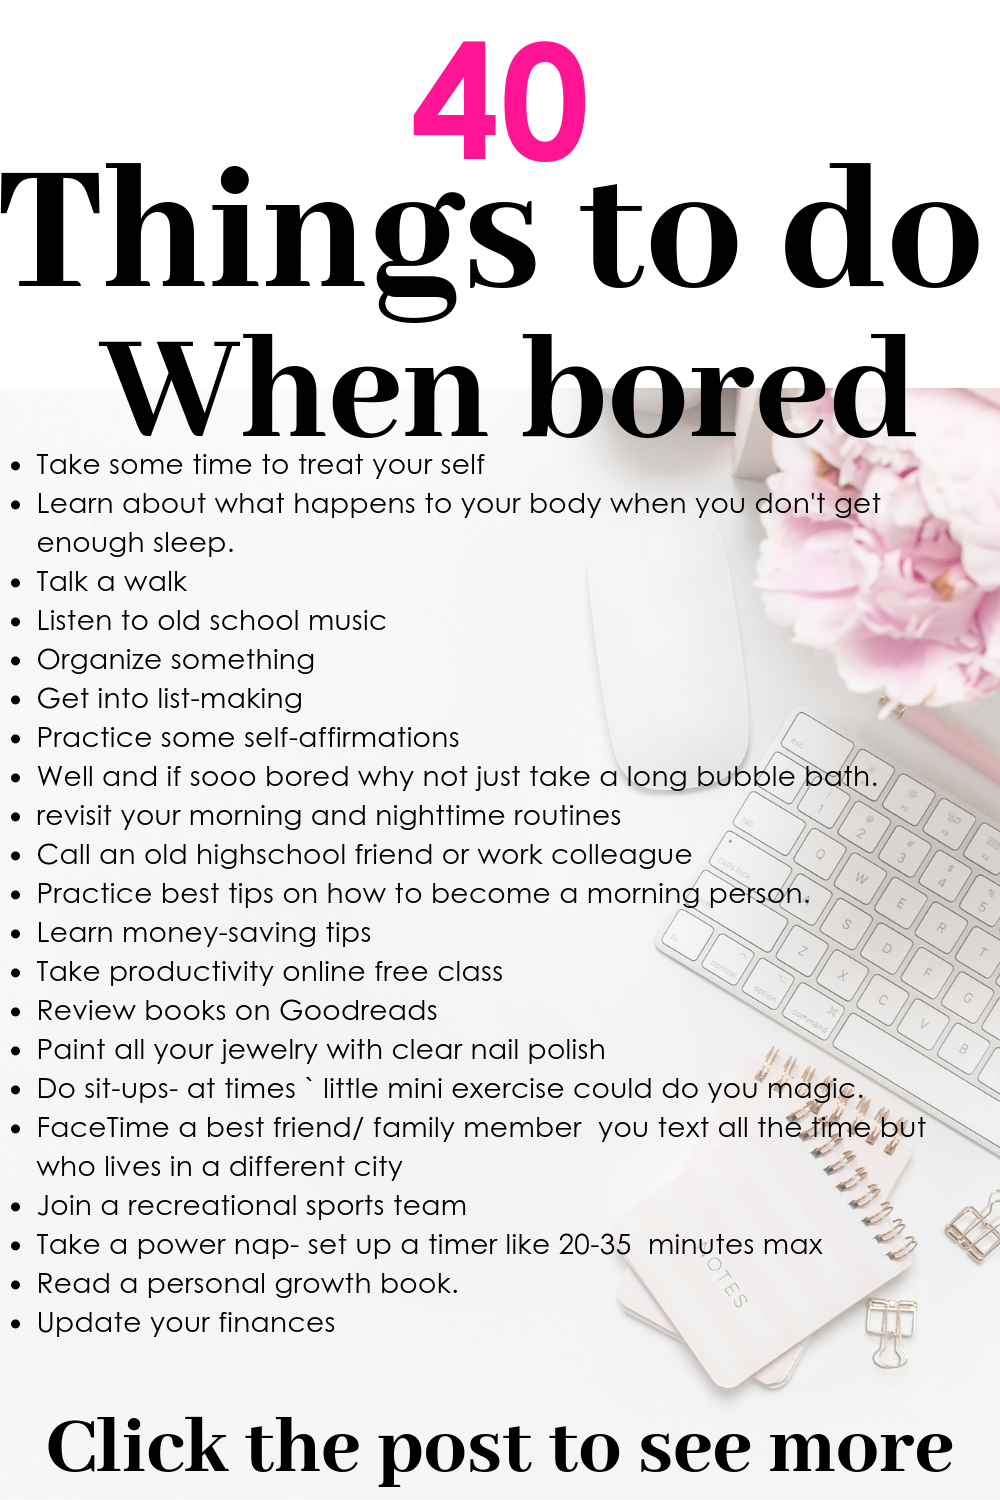 Things To Do When Bored 40 Productive Ideas Things to